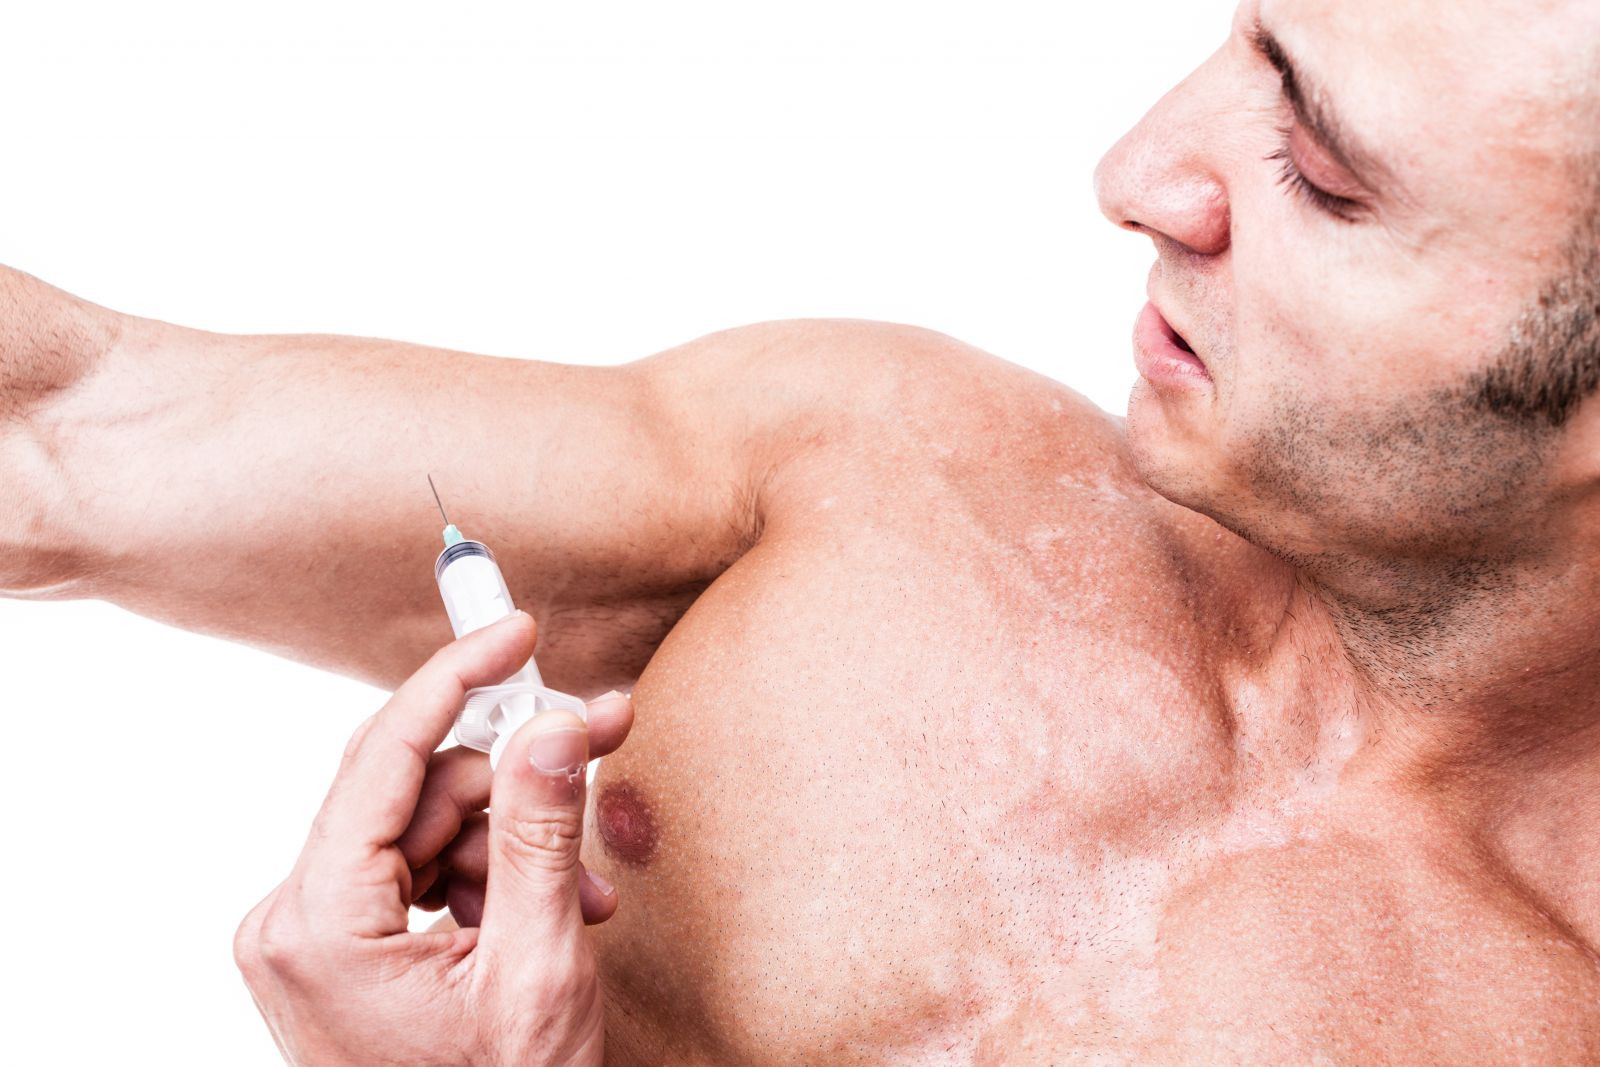 growth hormone, athletic performance, and aging